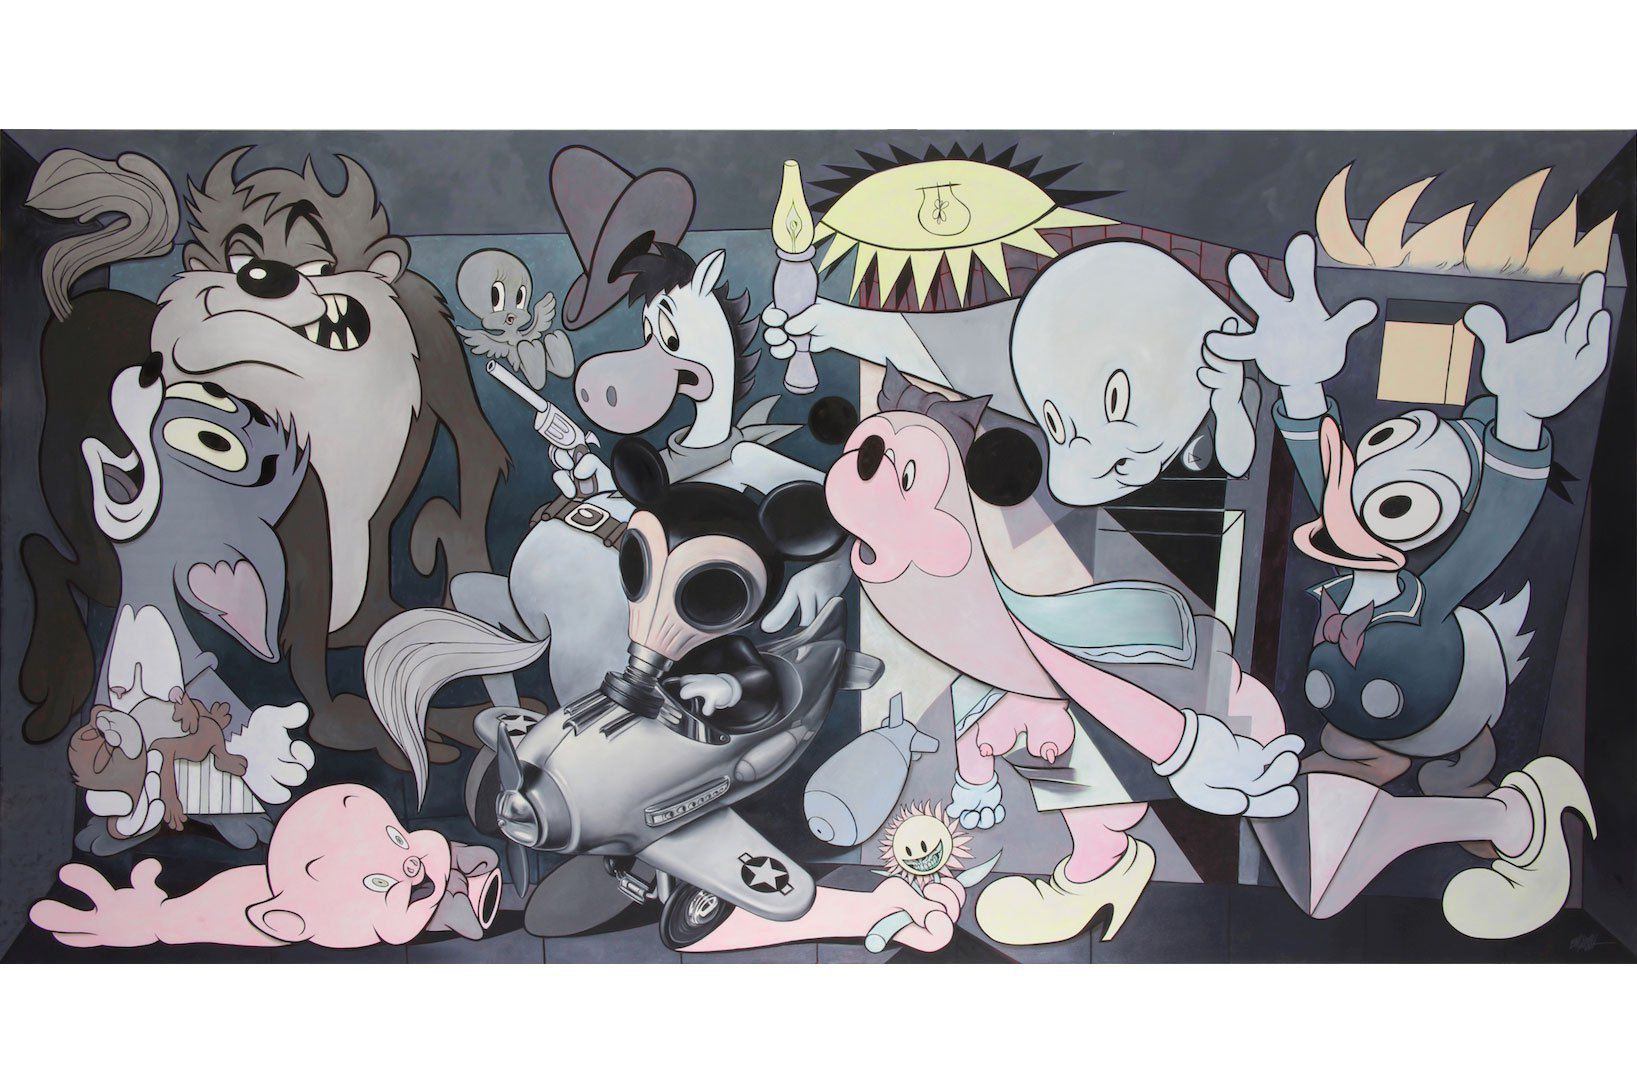 ron-english-guernica-allouche-gallery-8